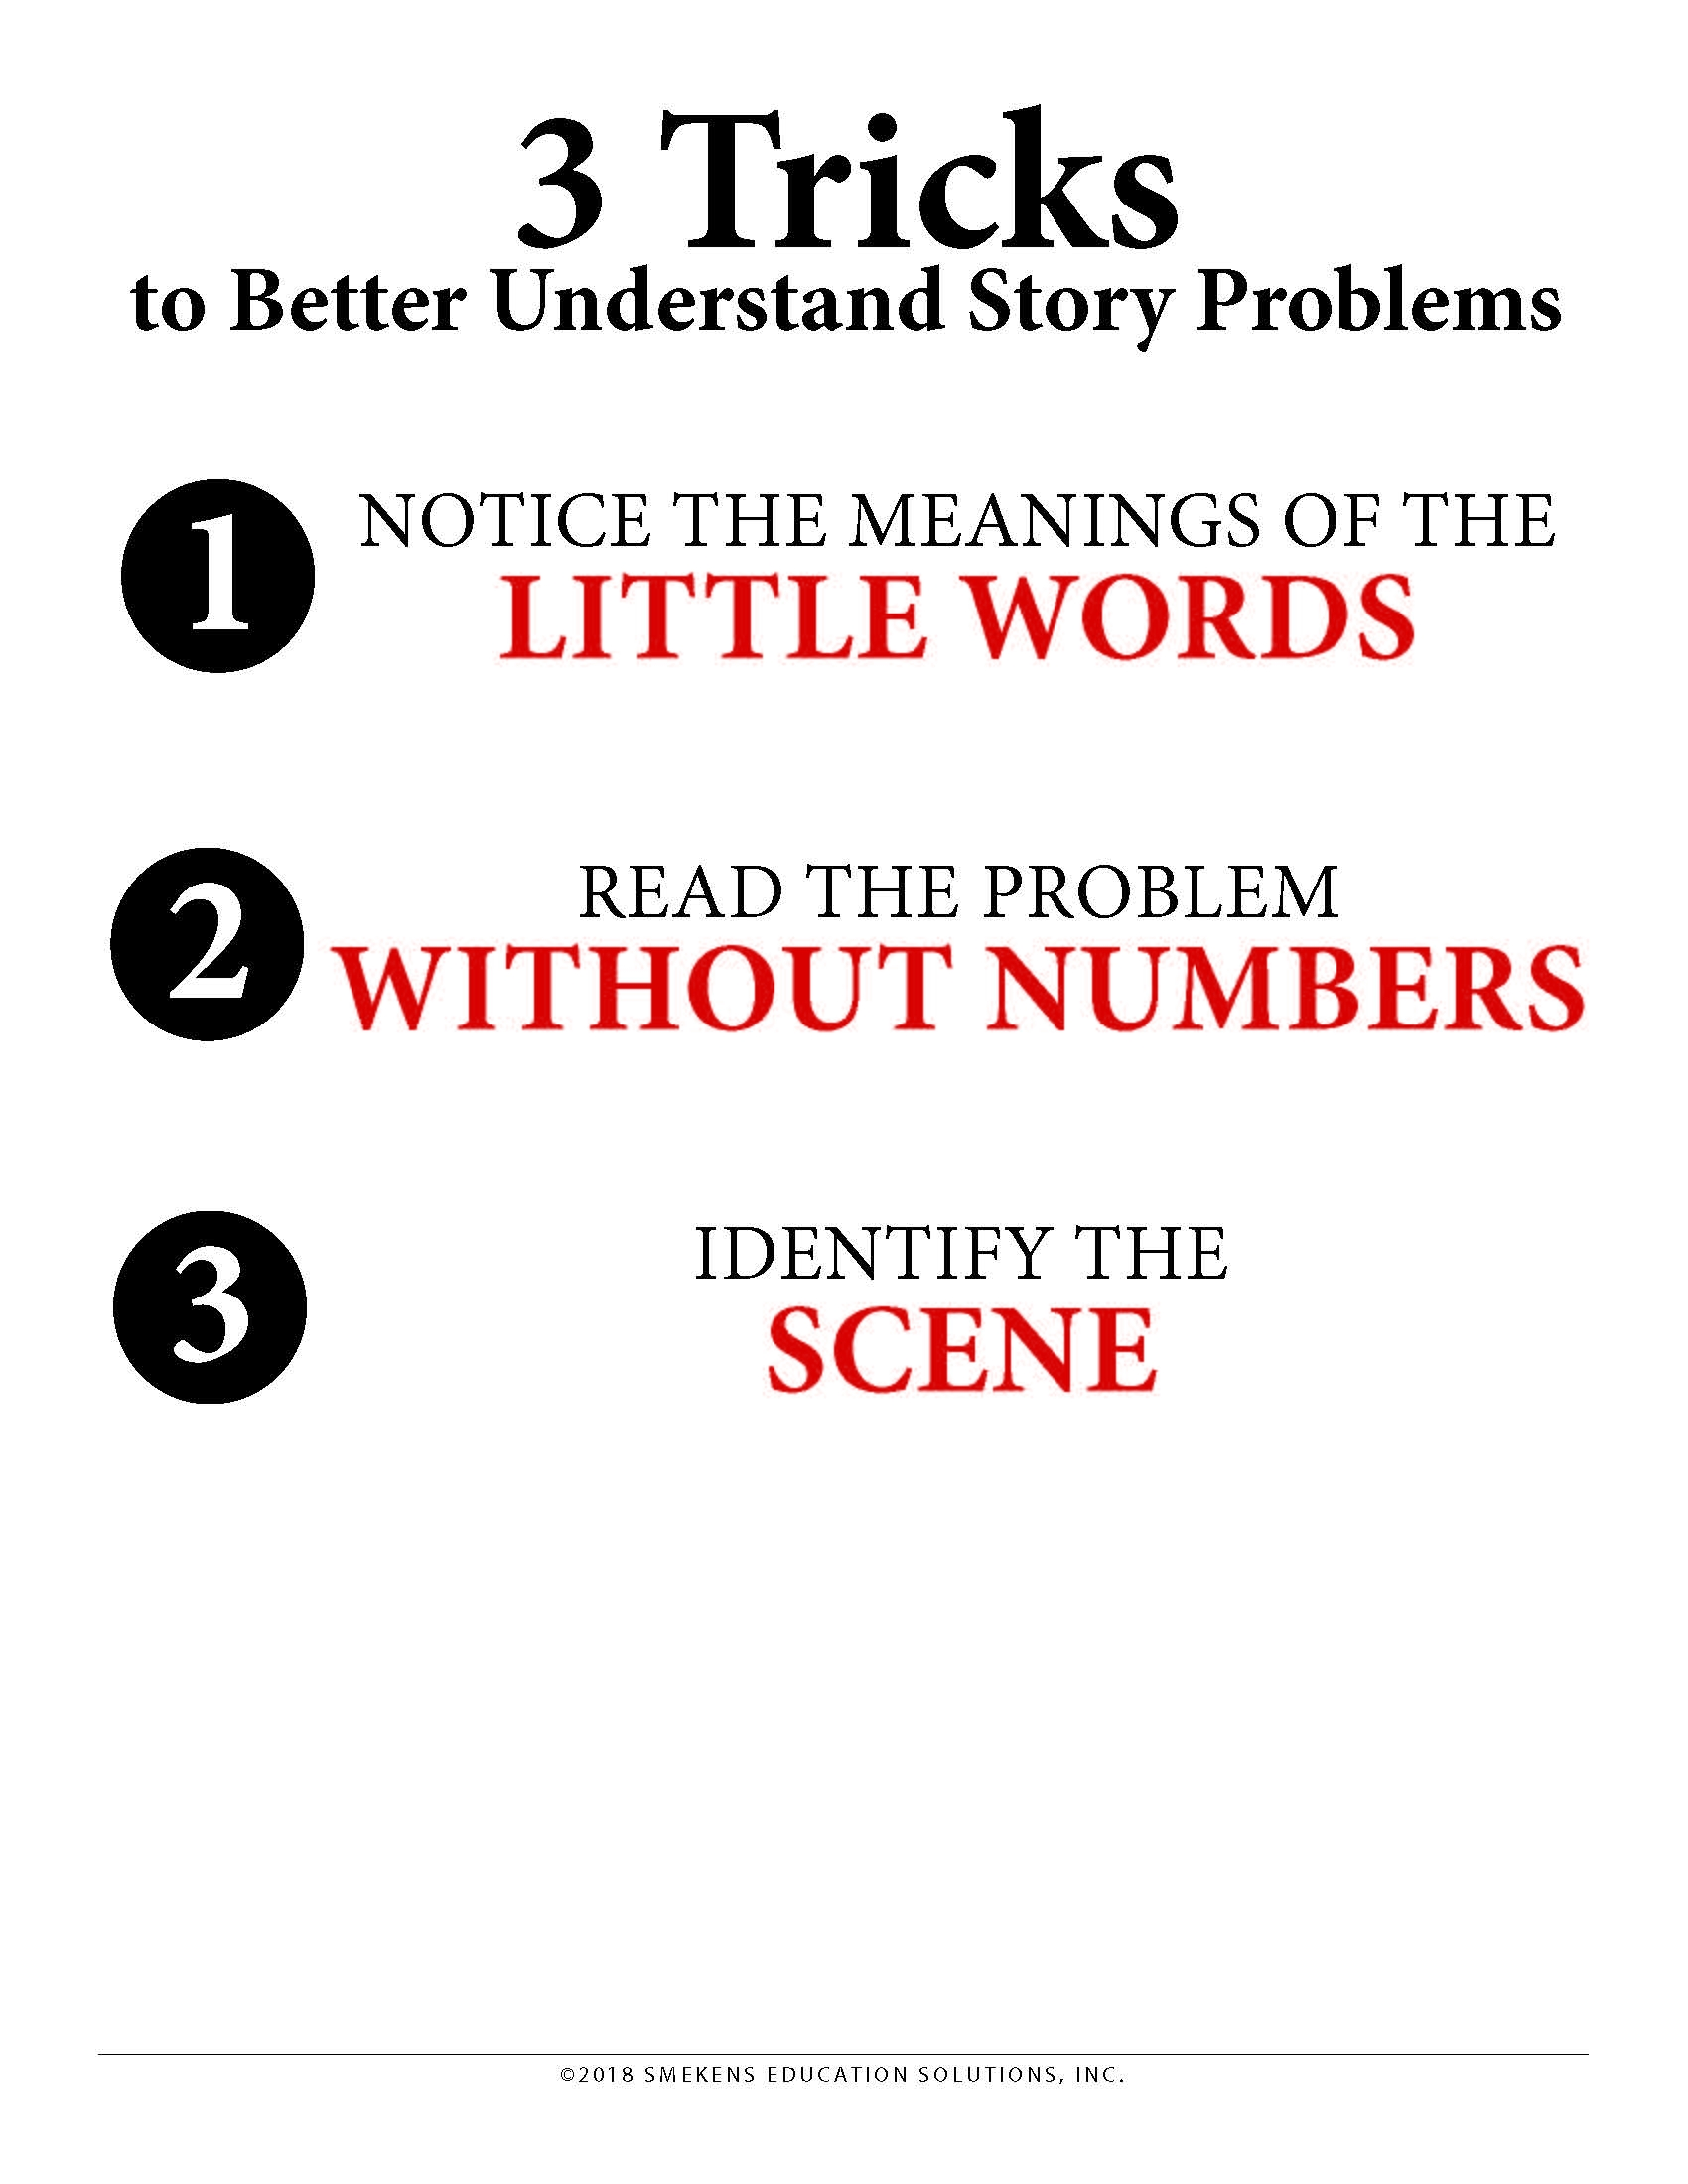 3 Tricks to Better Understand Story Problems - Downloadable Resource